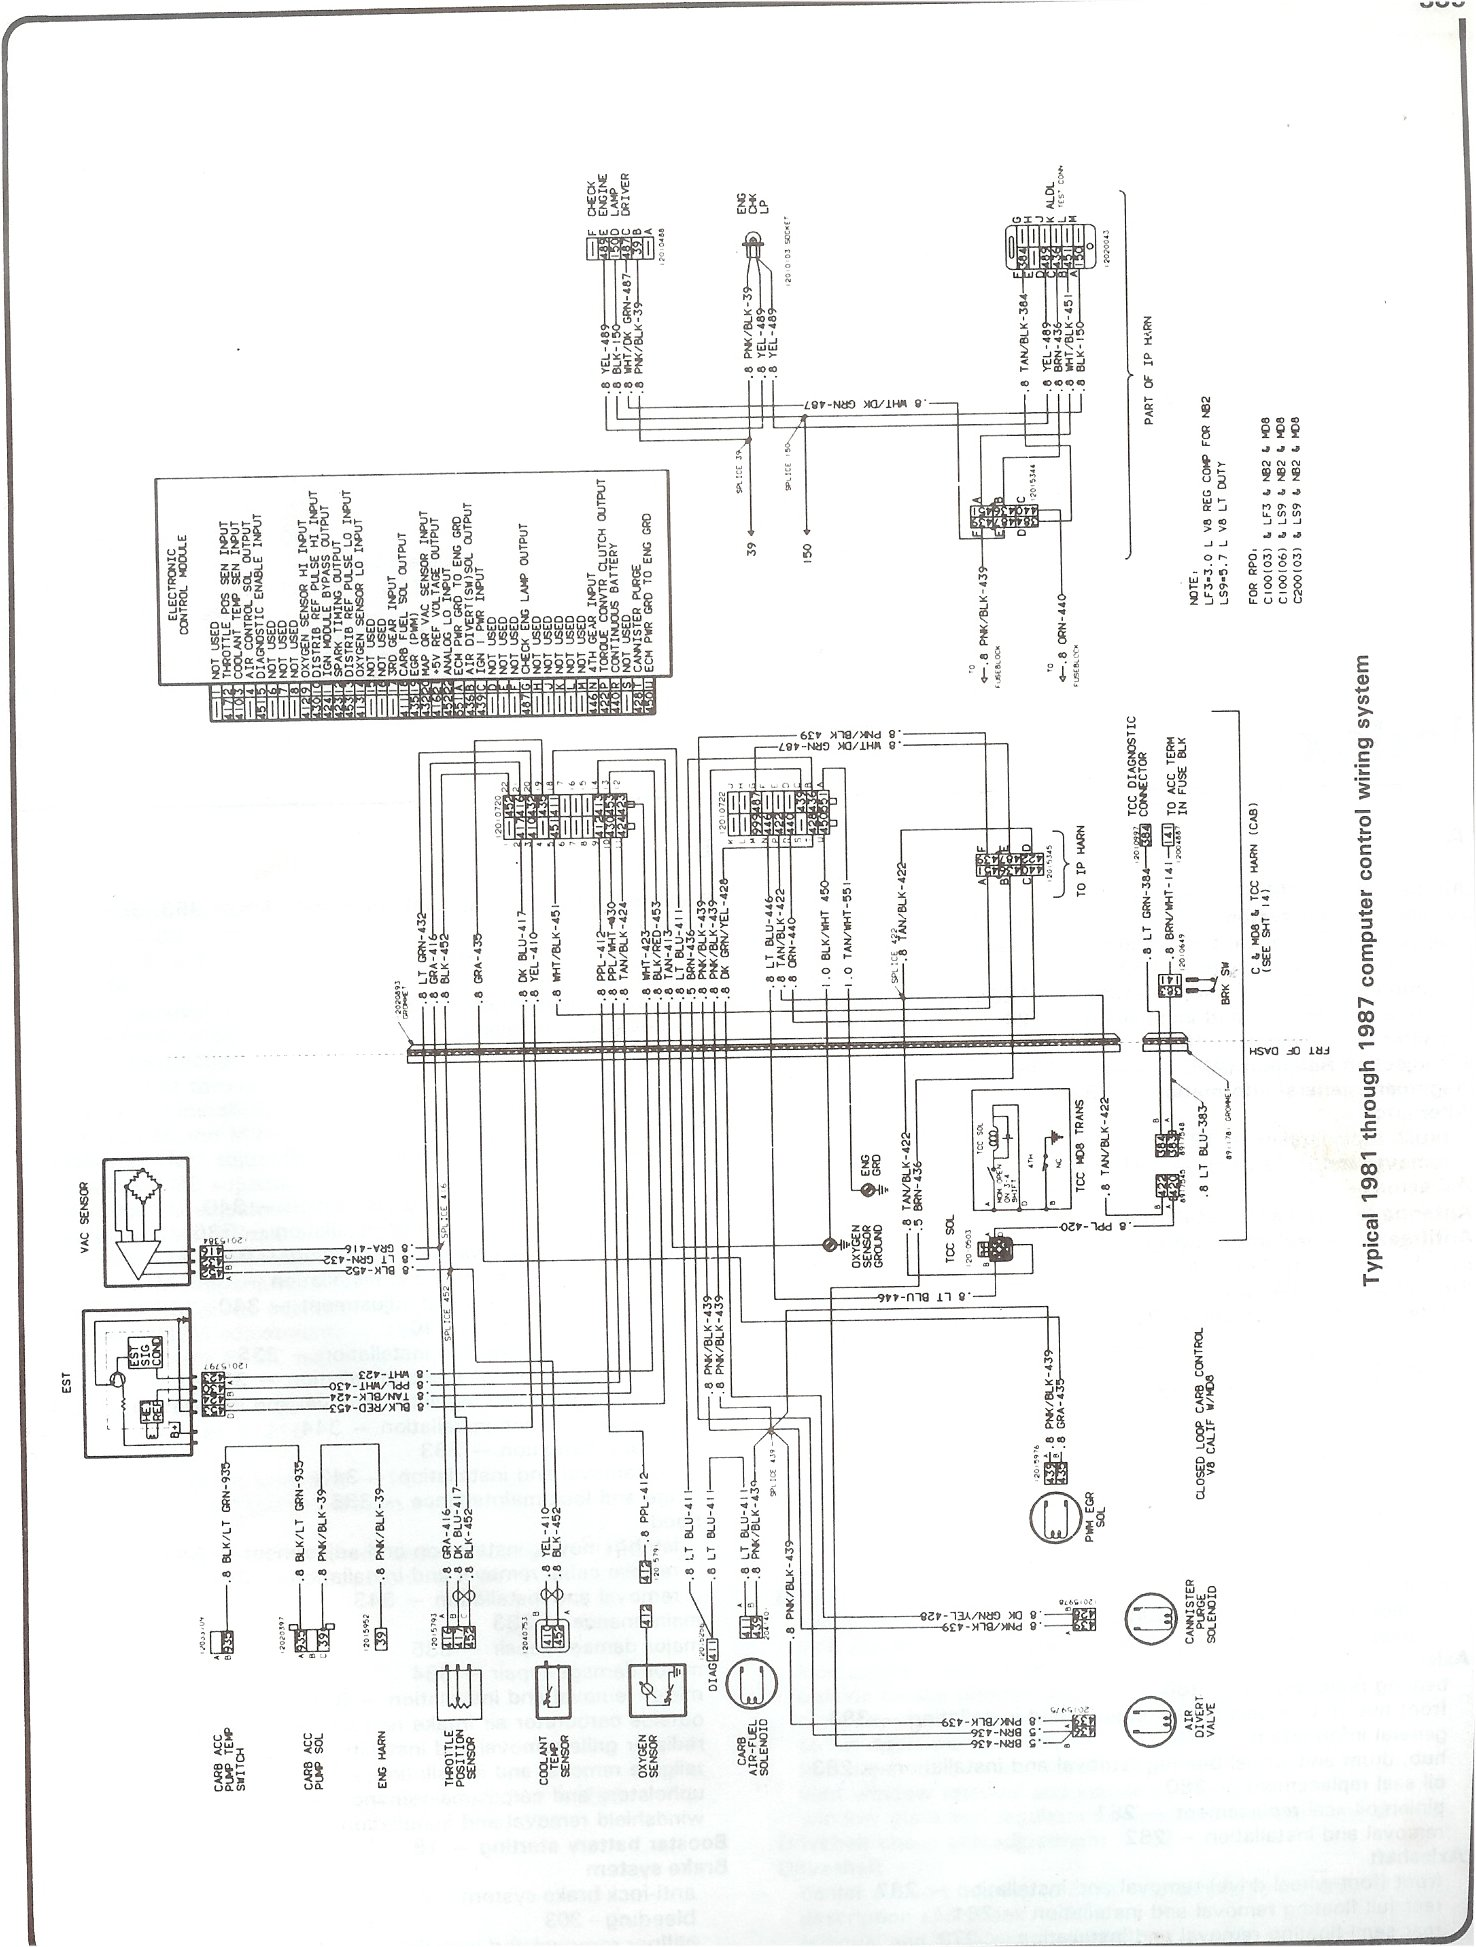 hight resolution of 82 chevy truck wiring harness wiring diagram source wiring harness diagram 4 3 v6 chevy s10 82 c10 engine wiring harness diagram